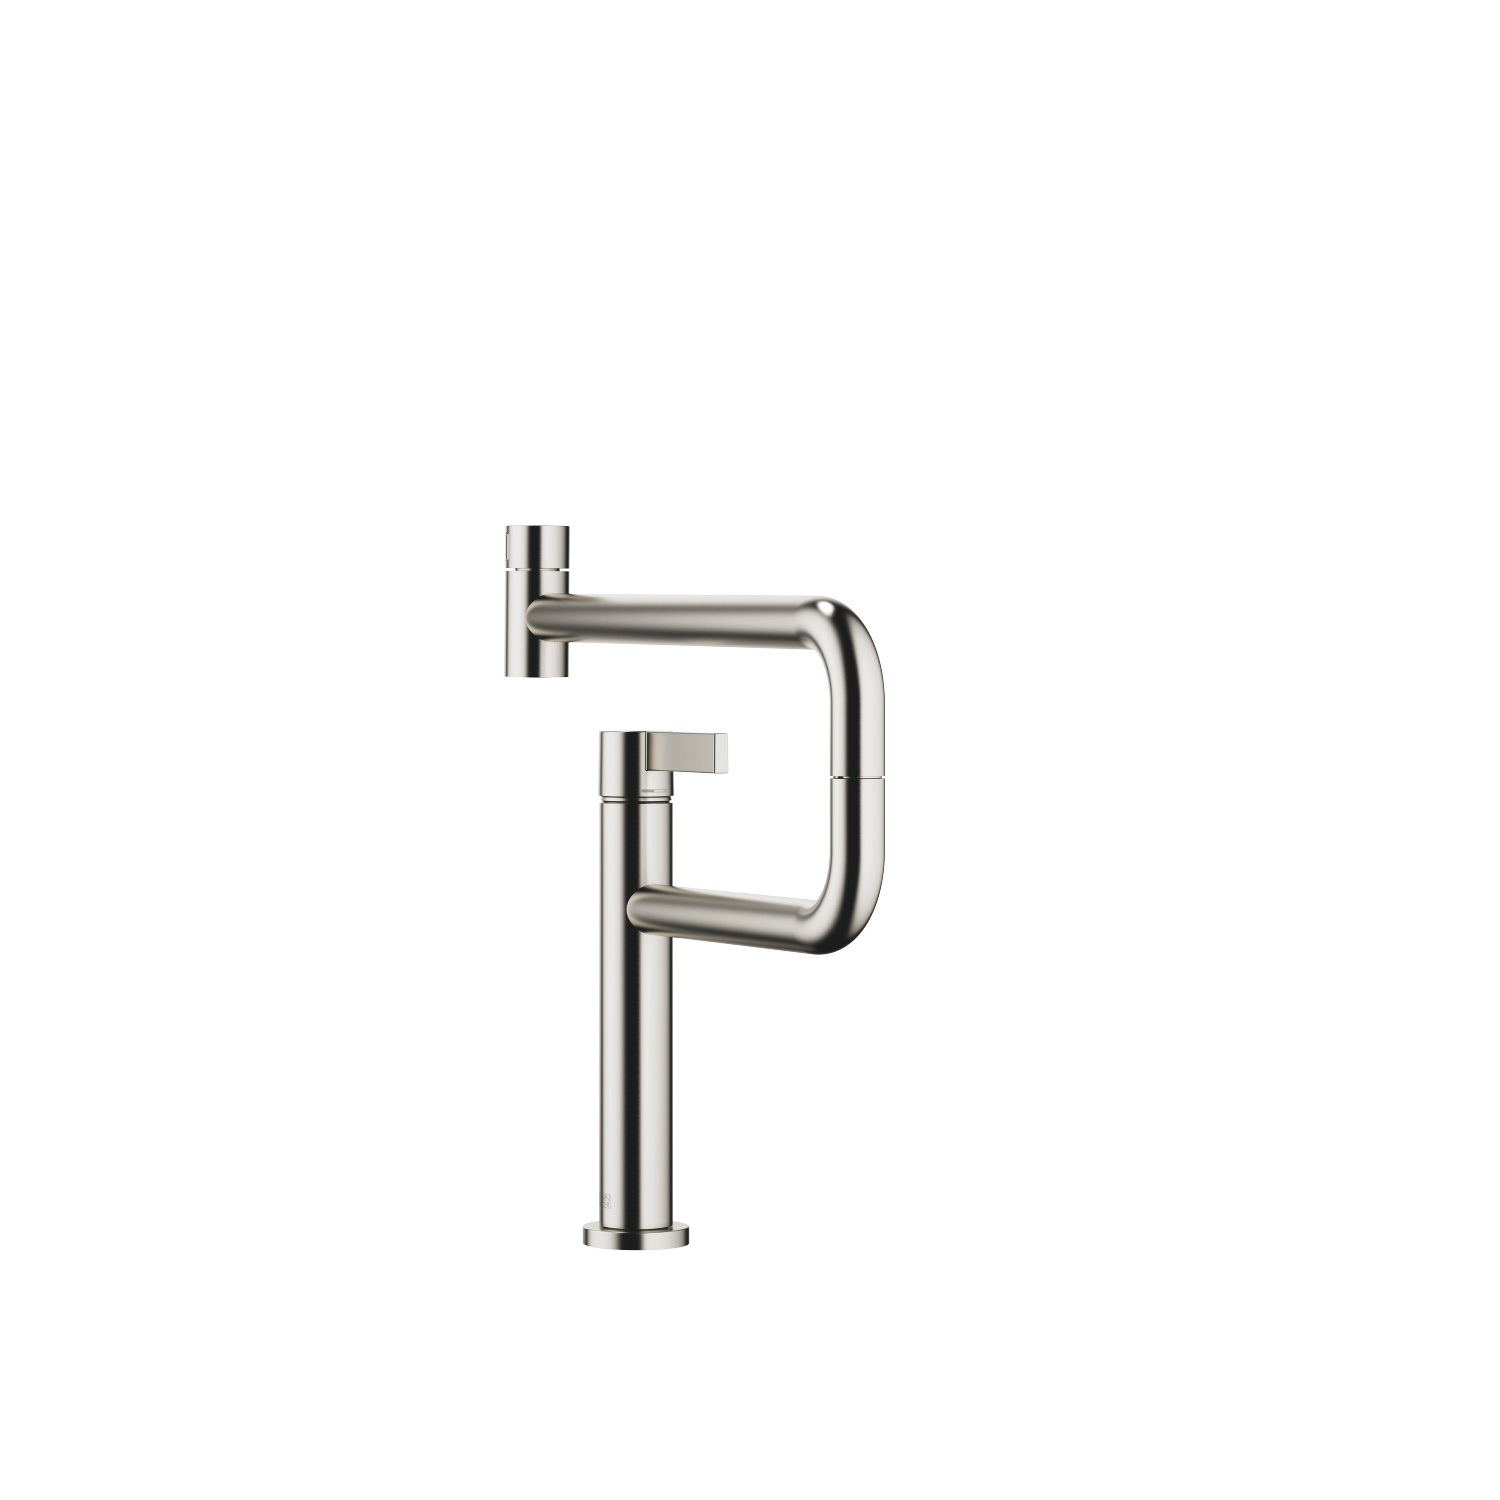 PIVOT Single-lever mixer - platinum matt